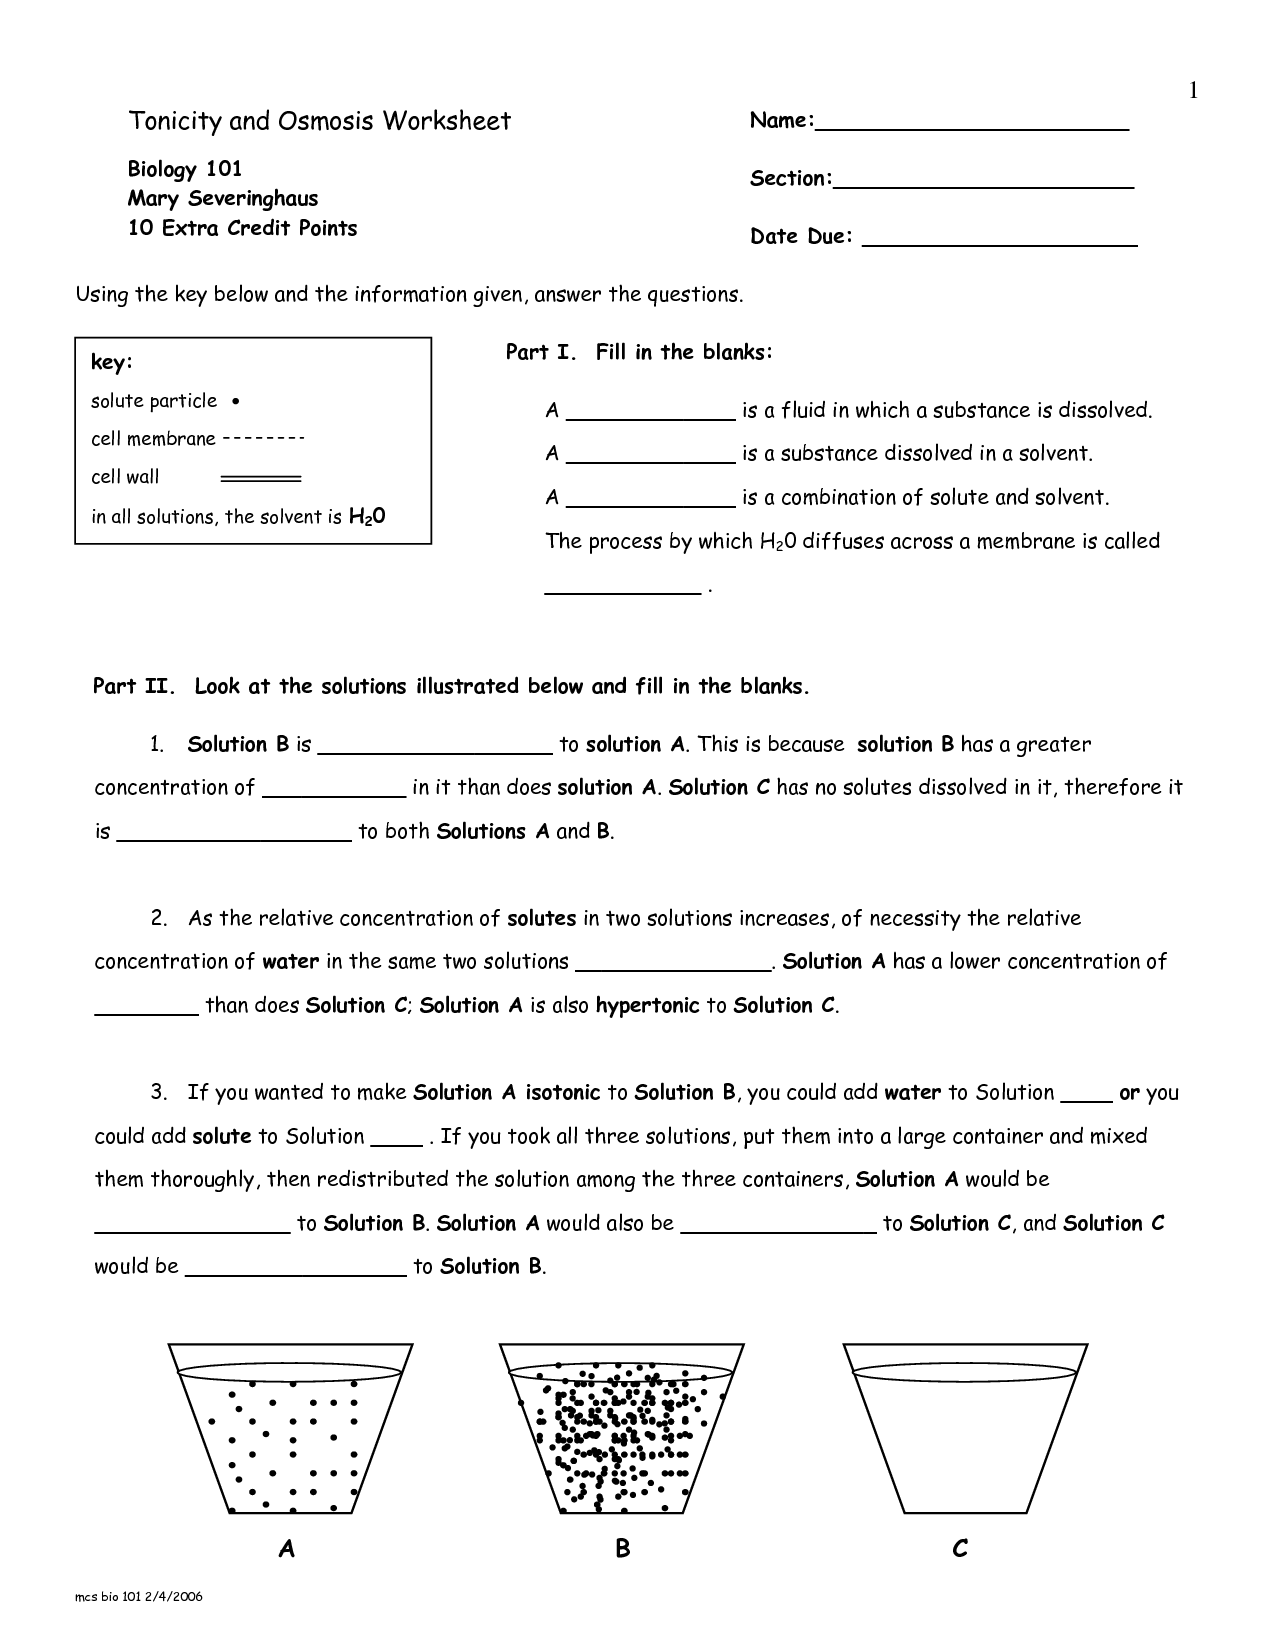 Worksheets Diffusion And Osmosis Worksheet collection of tonicity and osmosis worksheet adriaticatoursrl